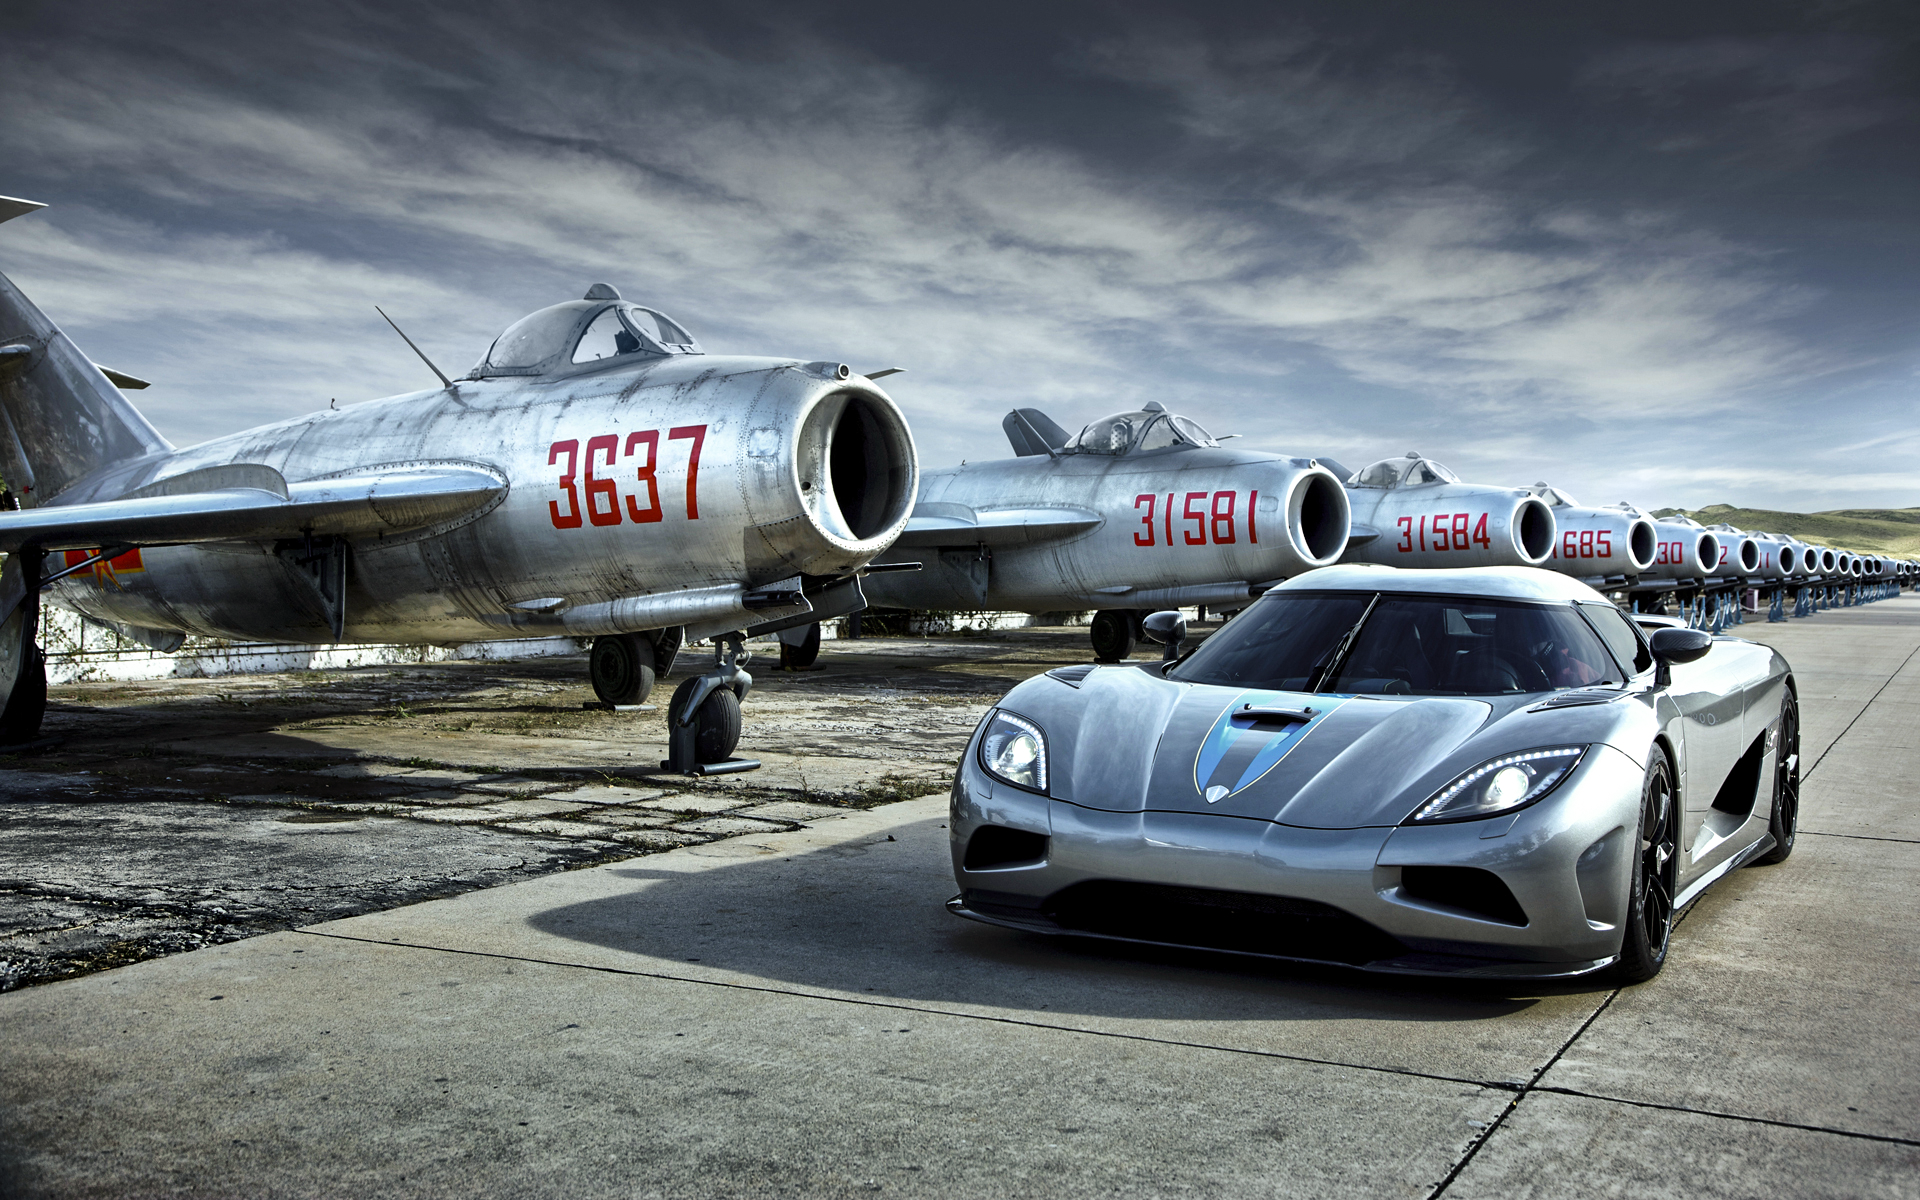 TV-program - Top Gear  Hypercar Koenigsegg Agera Supercar Sport Car Airplane Flygplan Mikoyan-Gurevich MiG-15 Bakgrund